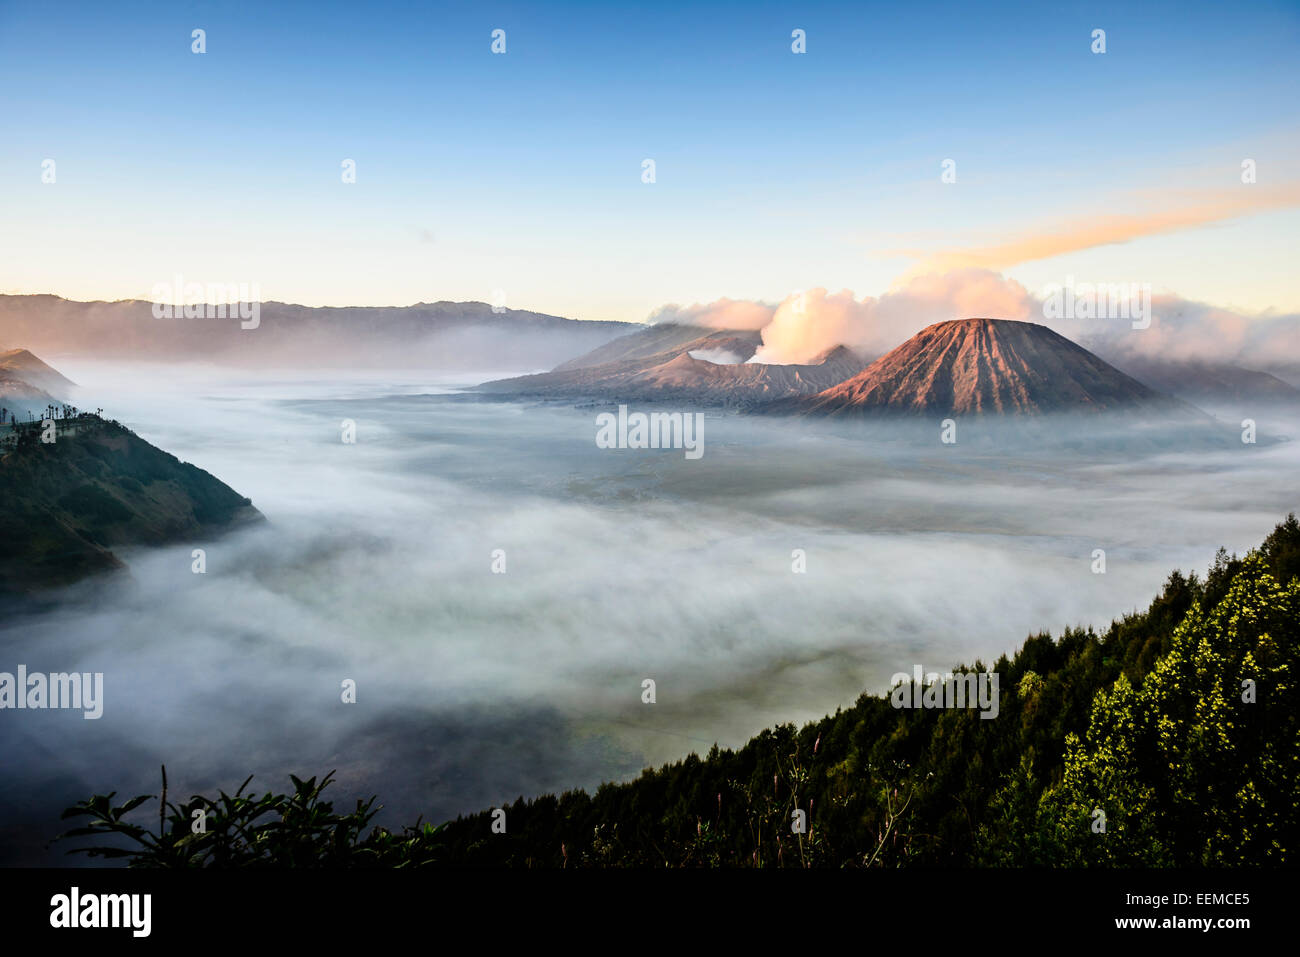 High angle view of clouds under smoking volcano - Stock Image